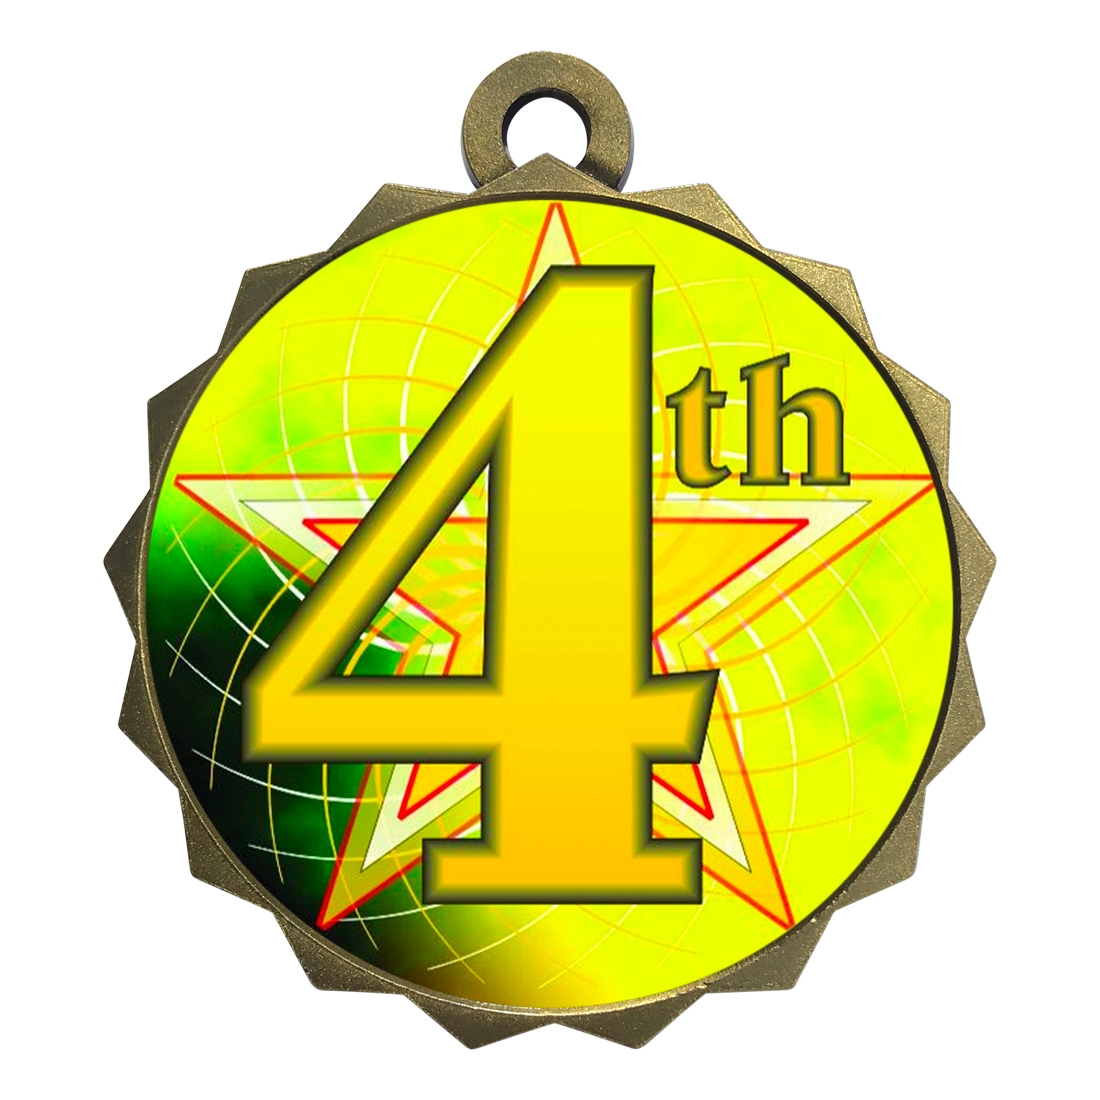 "2-1/4"" 4th Place Medal"